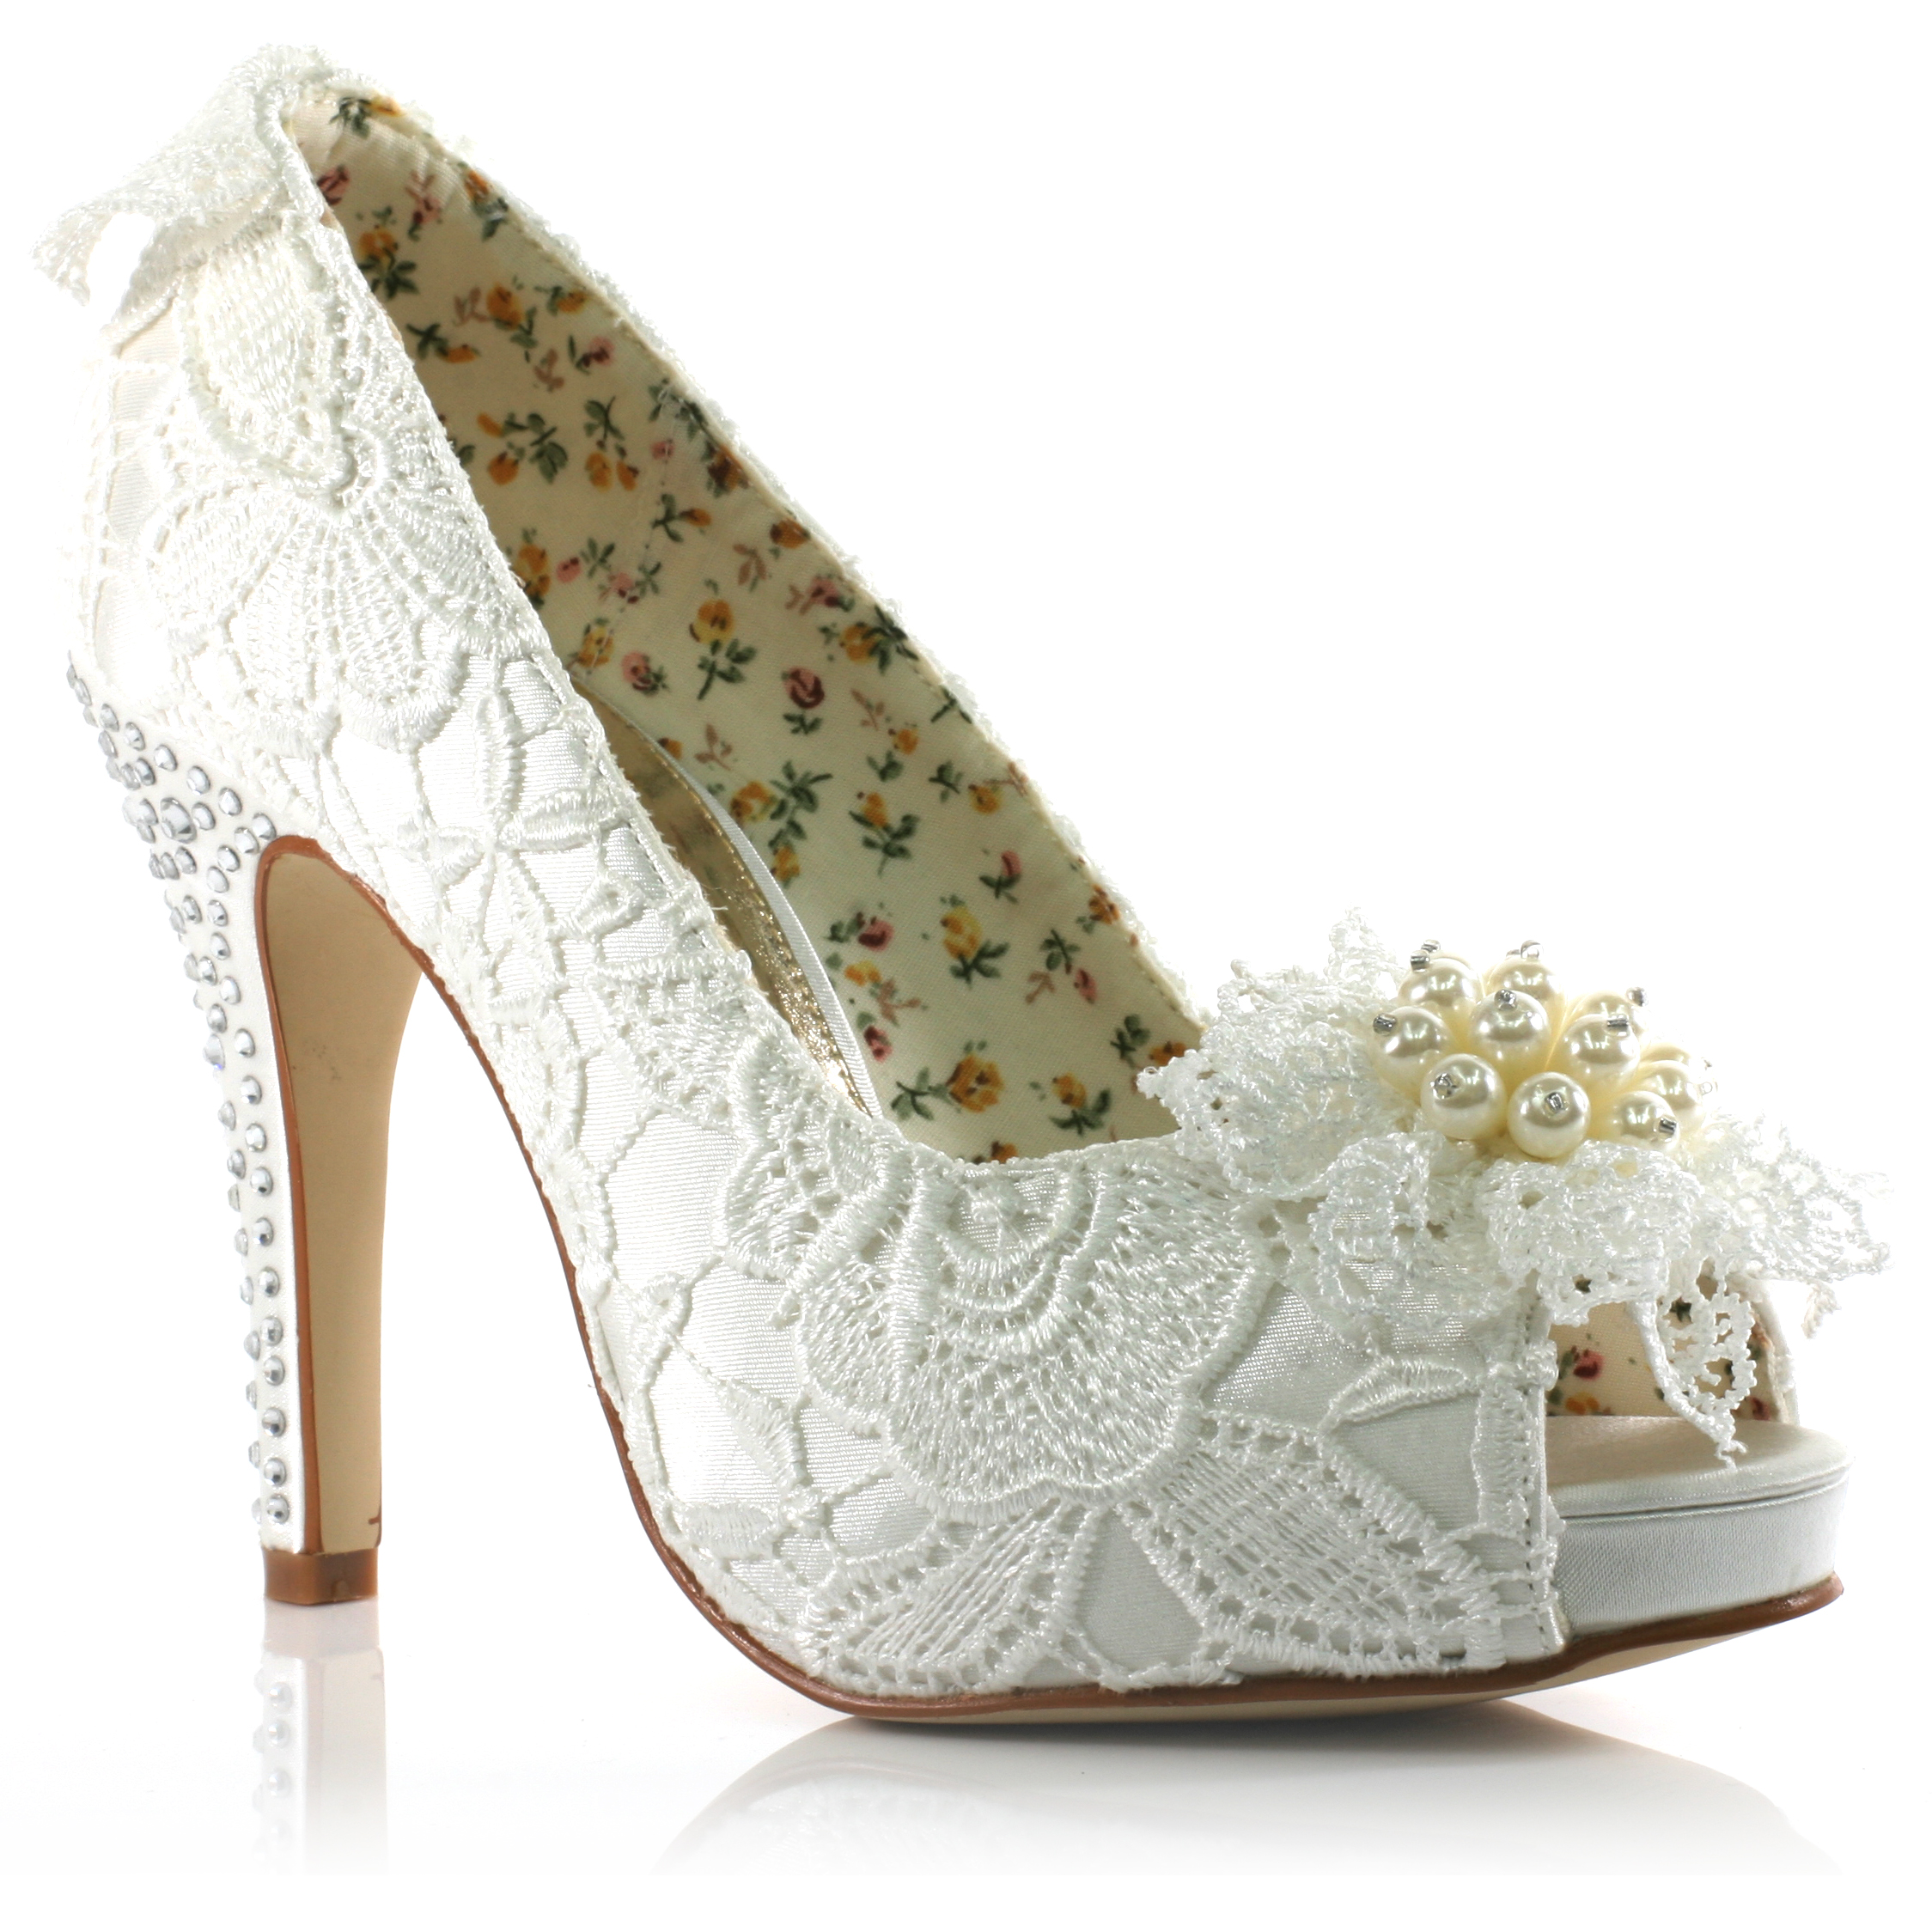 shoes for wedding photo - 1